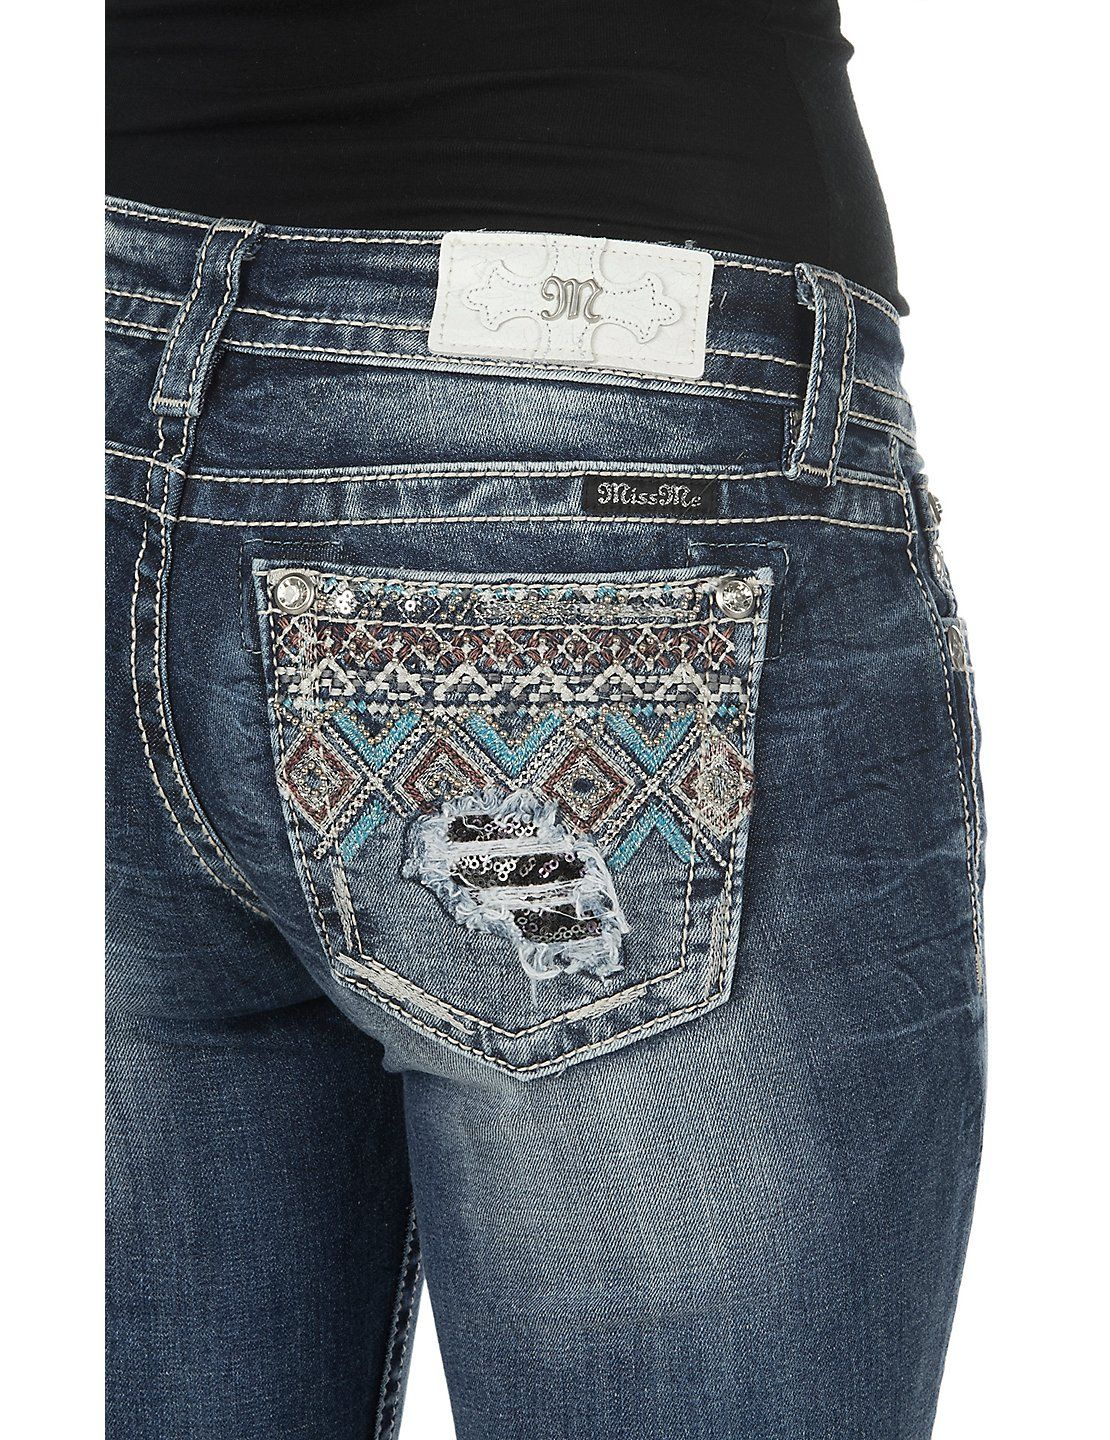 baef8c3cdc1e5 Miss Me Women s Medium Wash with Diamond Pattern Beaded Open Back Pocket  Boot Cut Jeans